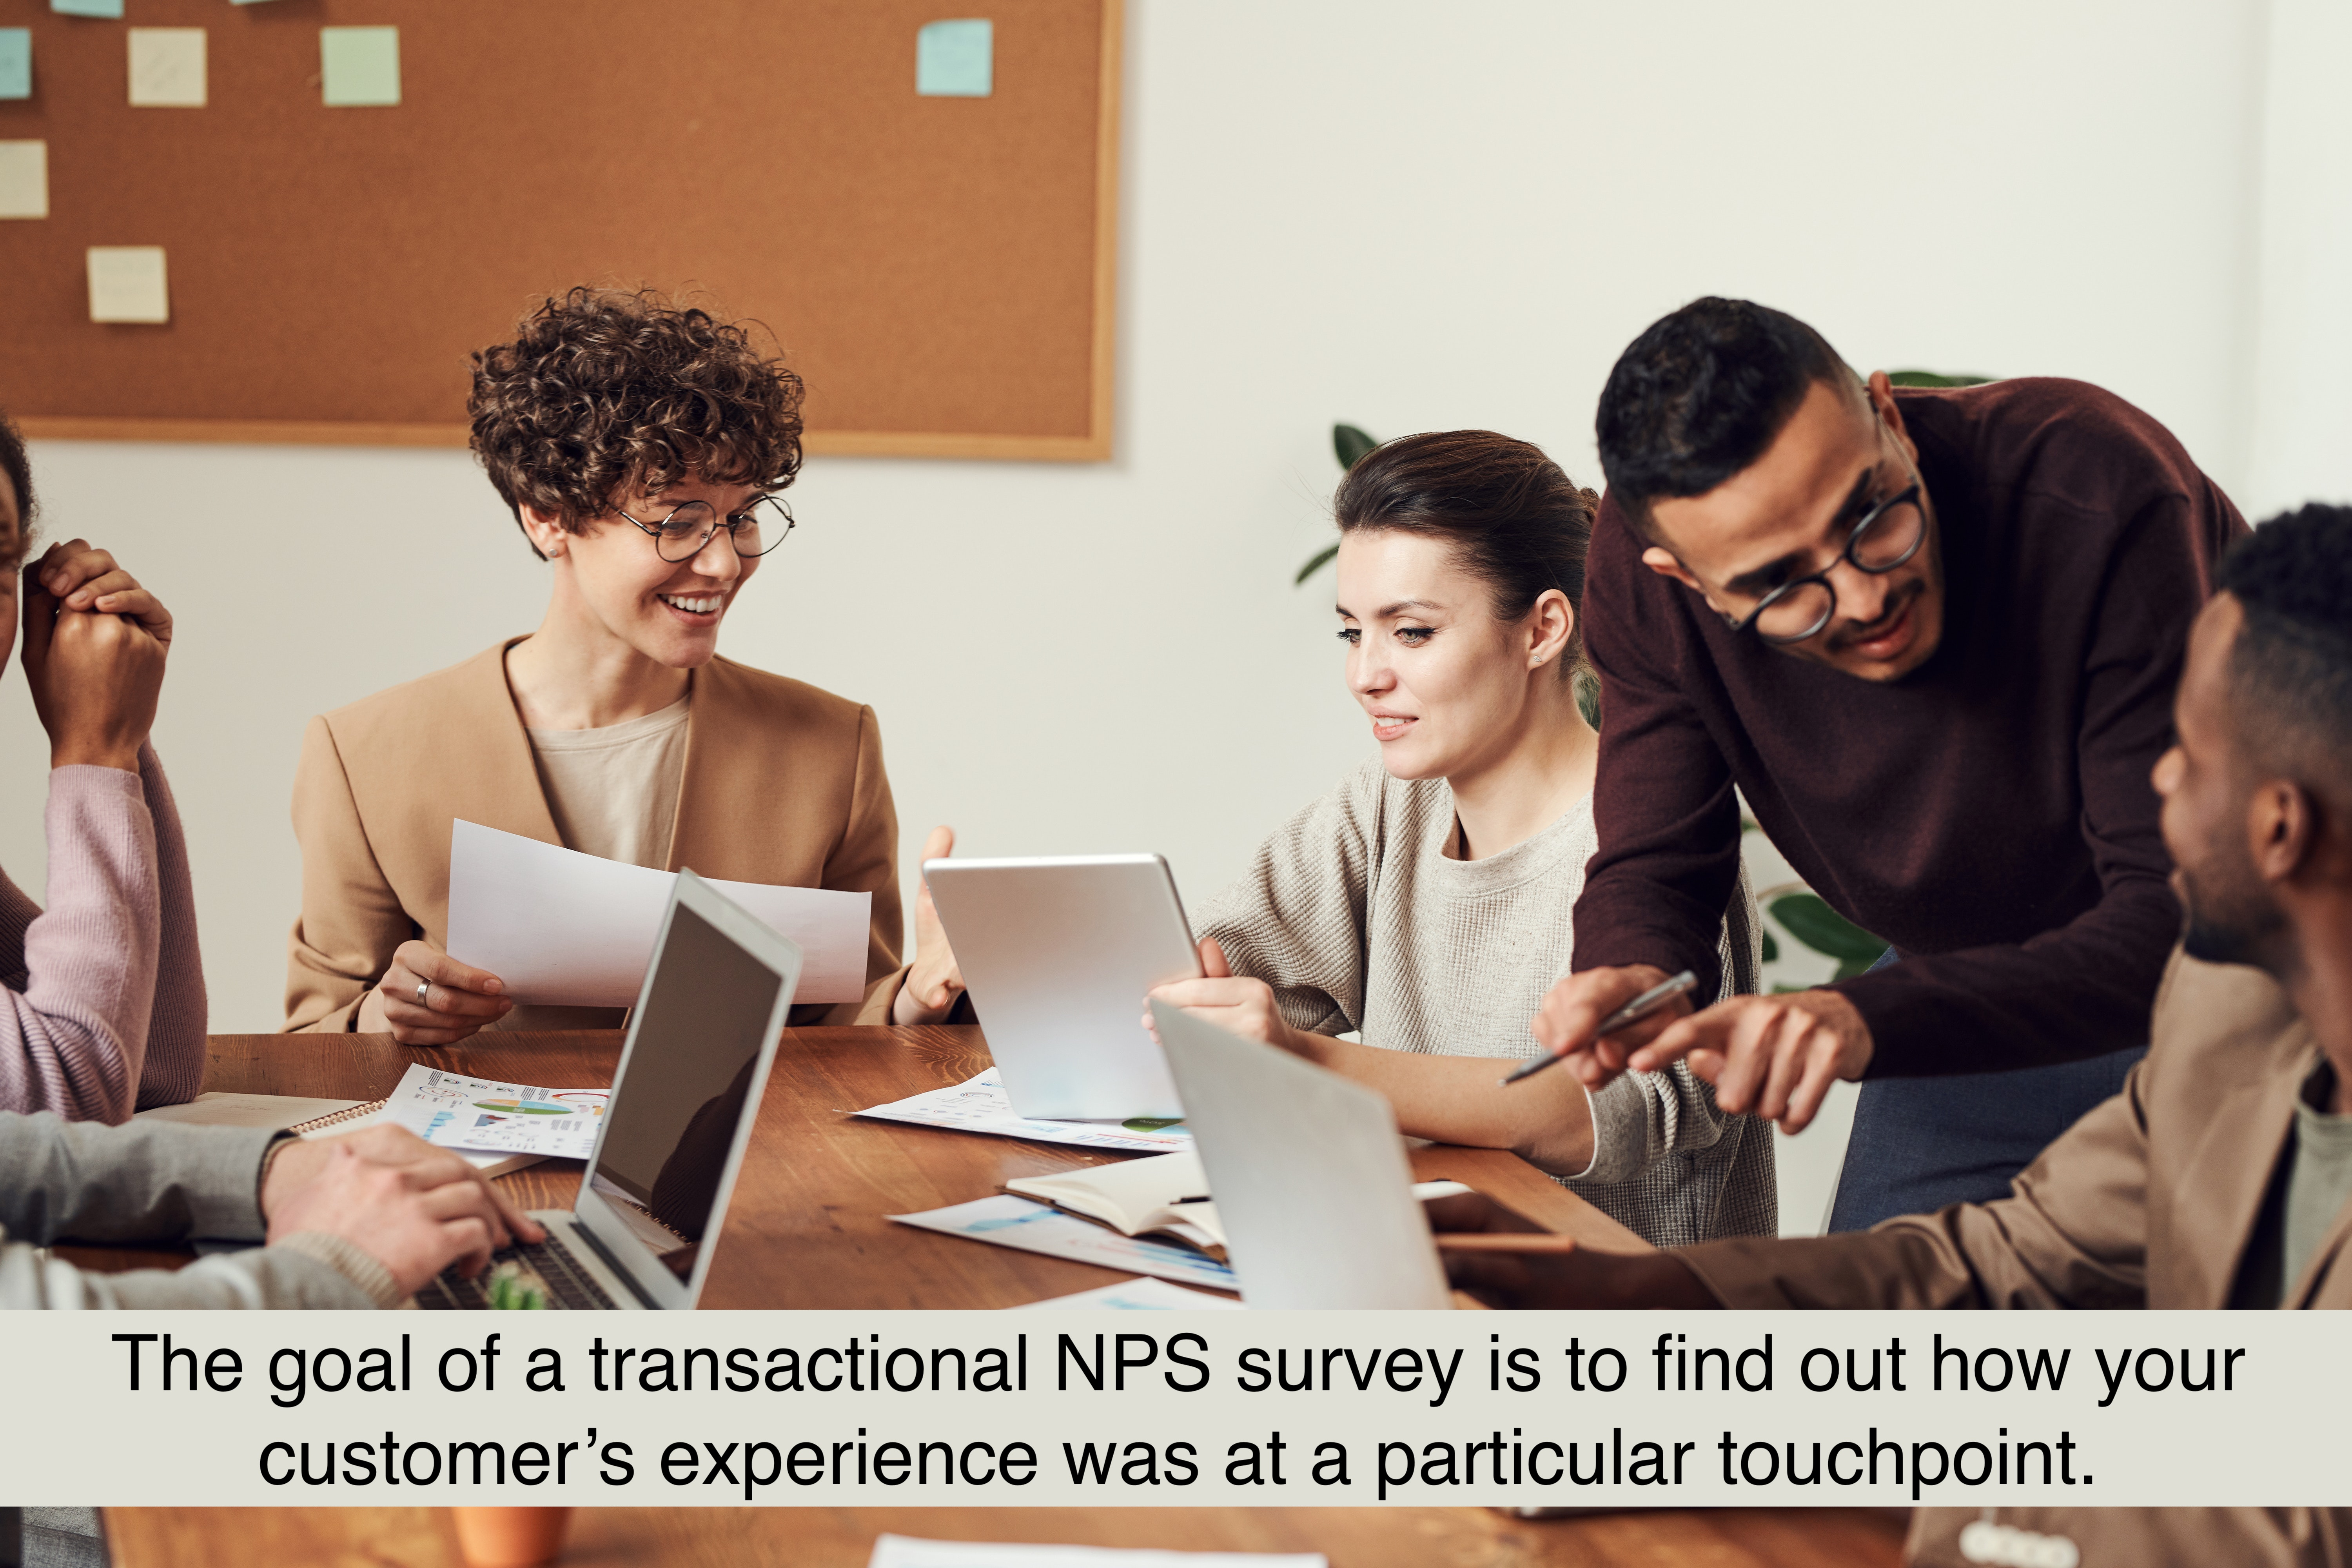 The goal of a transactional NPS survey is to find out how your customer's experience was at a particular touchpoint.